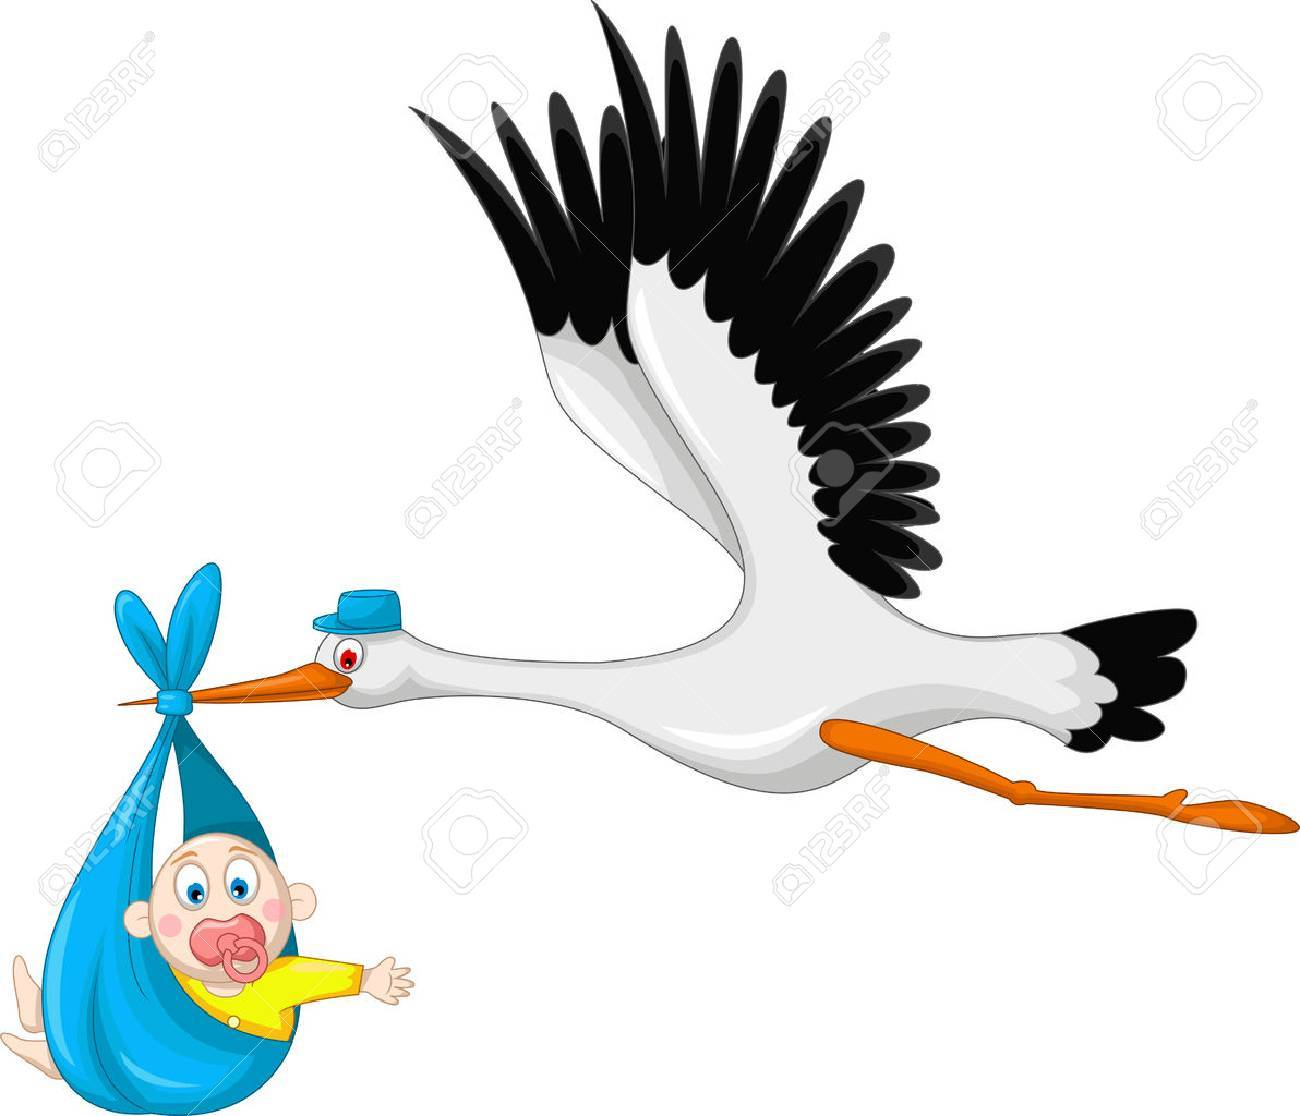 stork and baby royalty free cliparts vectors and stock rh 123rf com stock vector images stock vector art